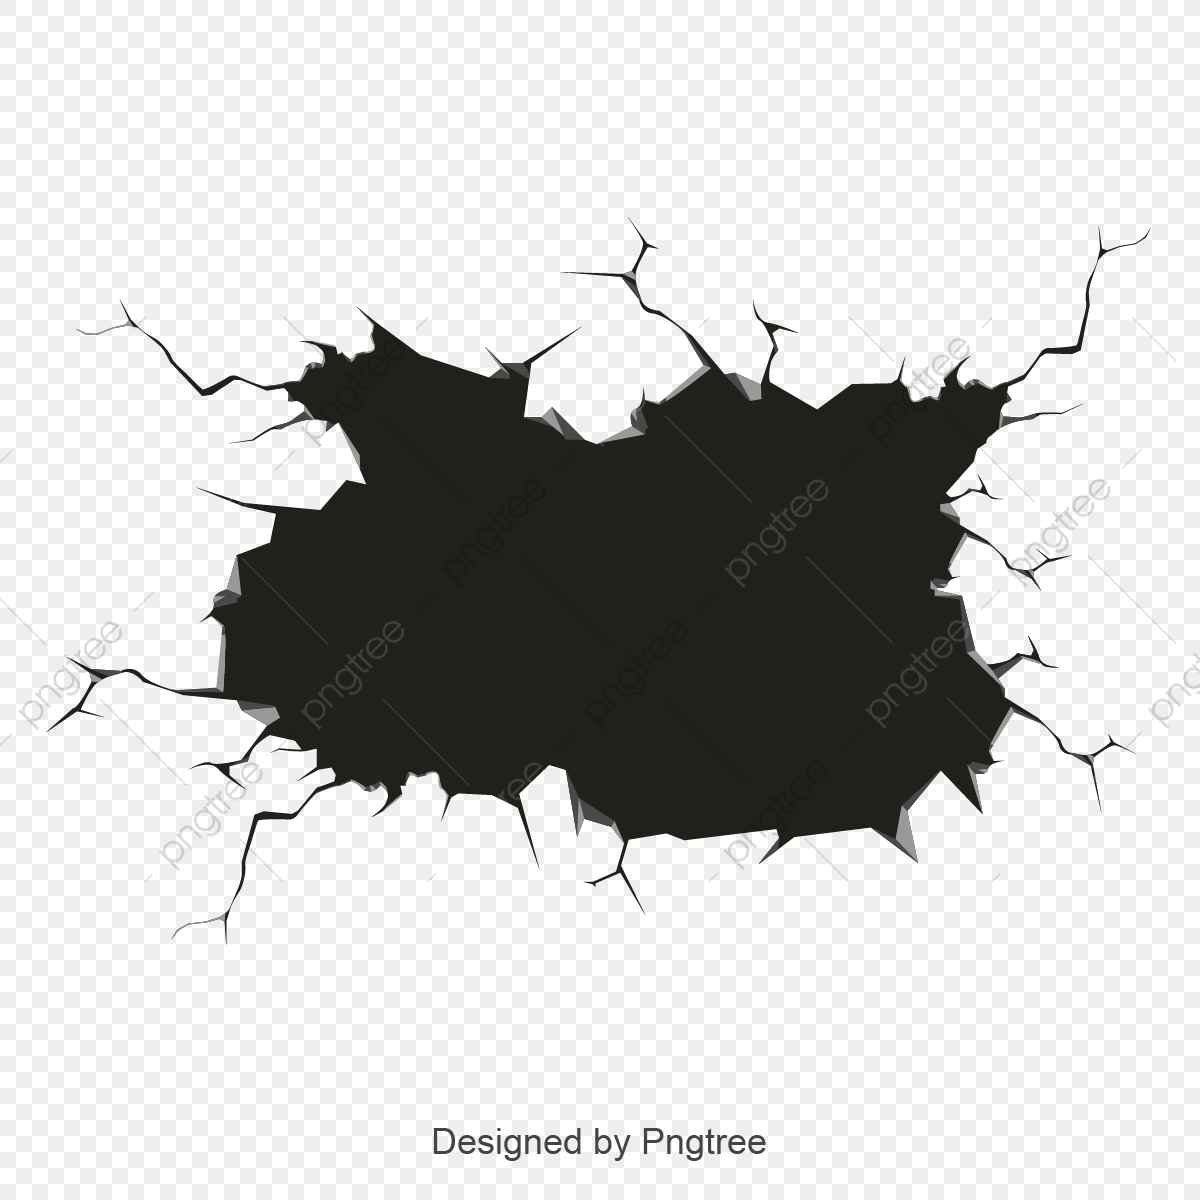 Wall Crack, Black, Wall PNG and Vector with Transparent Background.